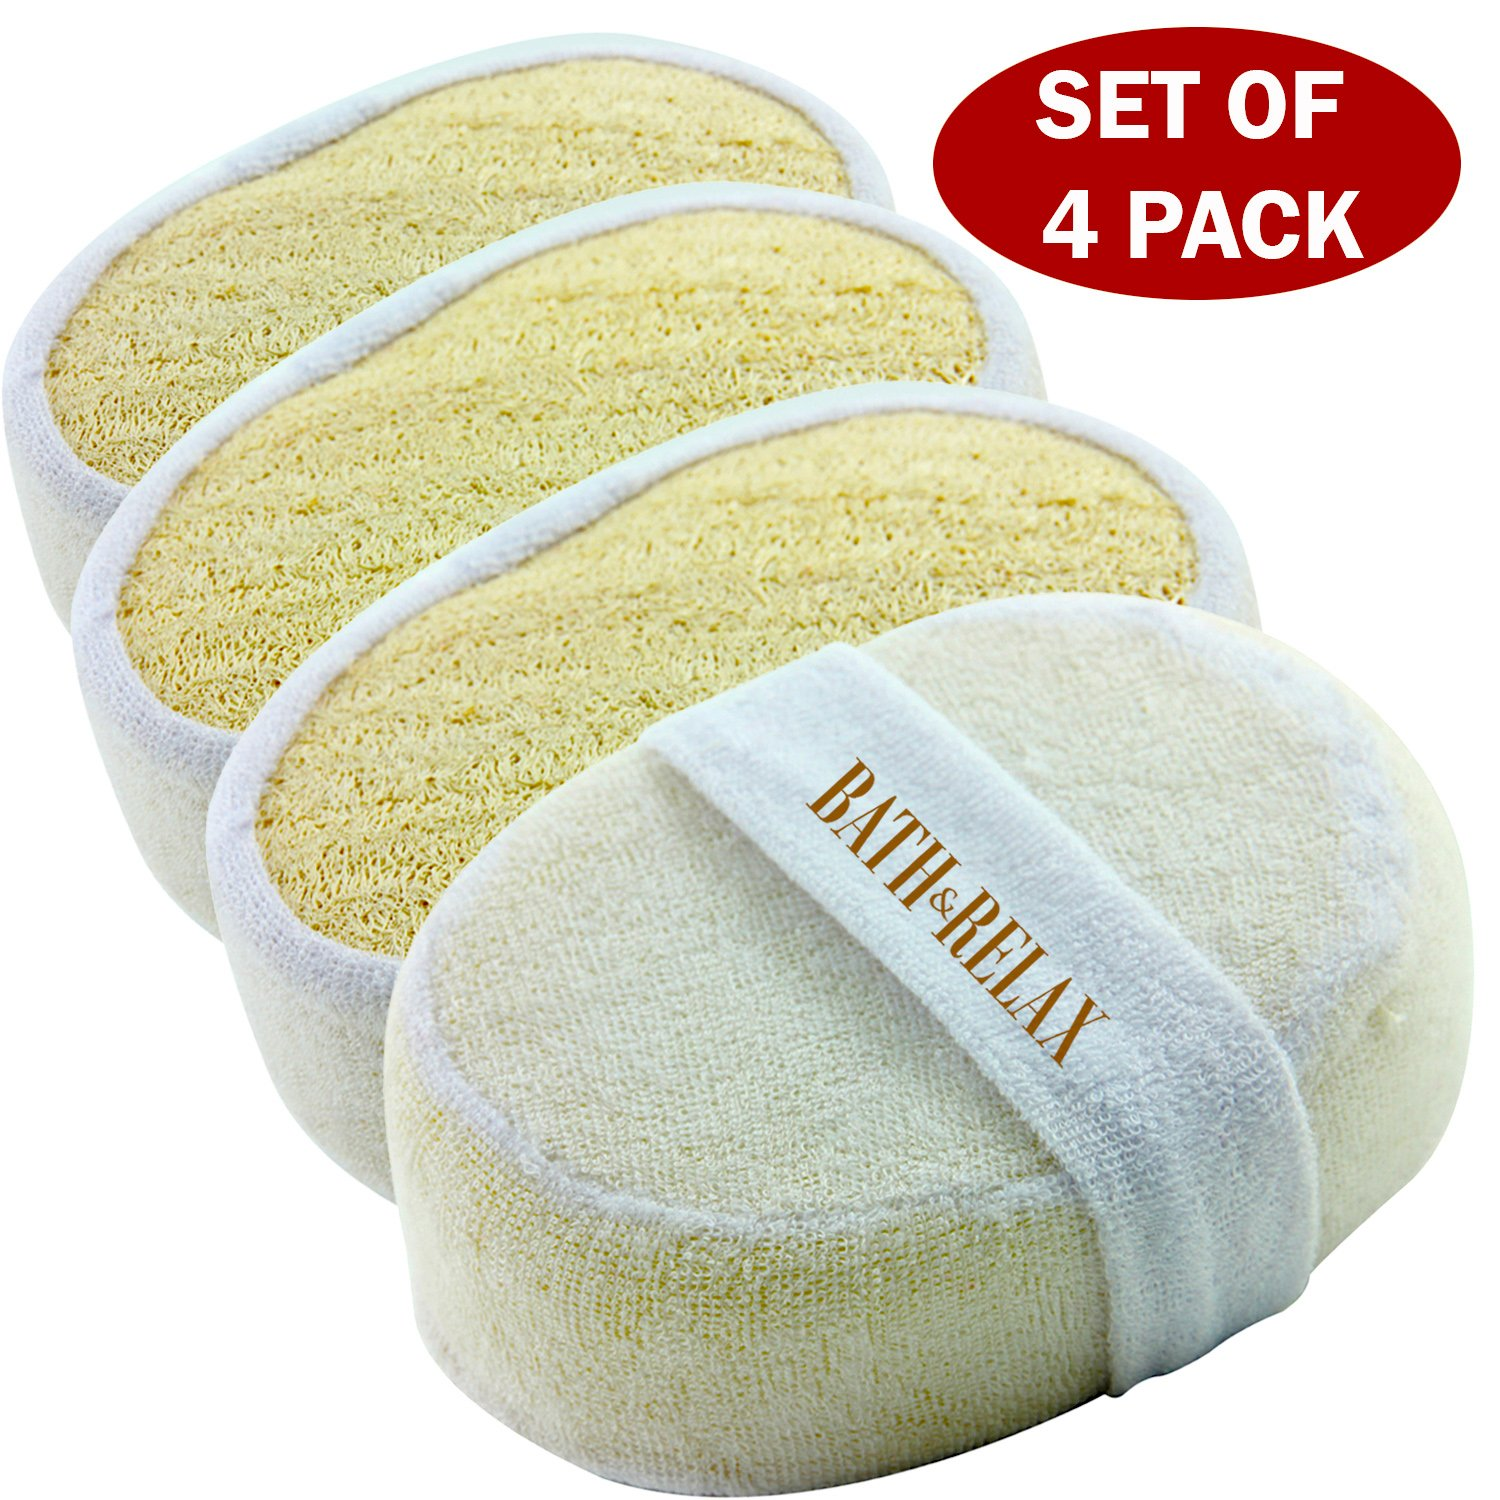 Exfoliating Loofah Bath Sponge Pads Pack Of 4 - Ultra Thick, Great For Exfoliating Shower - 100% Natural - Best Luffa Sponge And Spa Scrubber For Men And Women - Body wash sponge Good Deal Enterprise